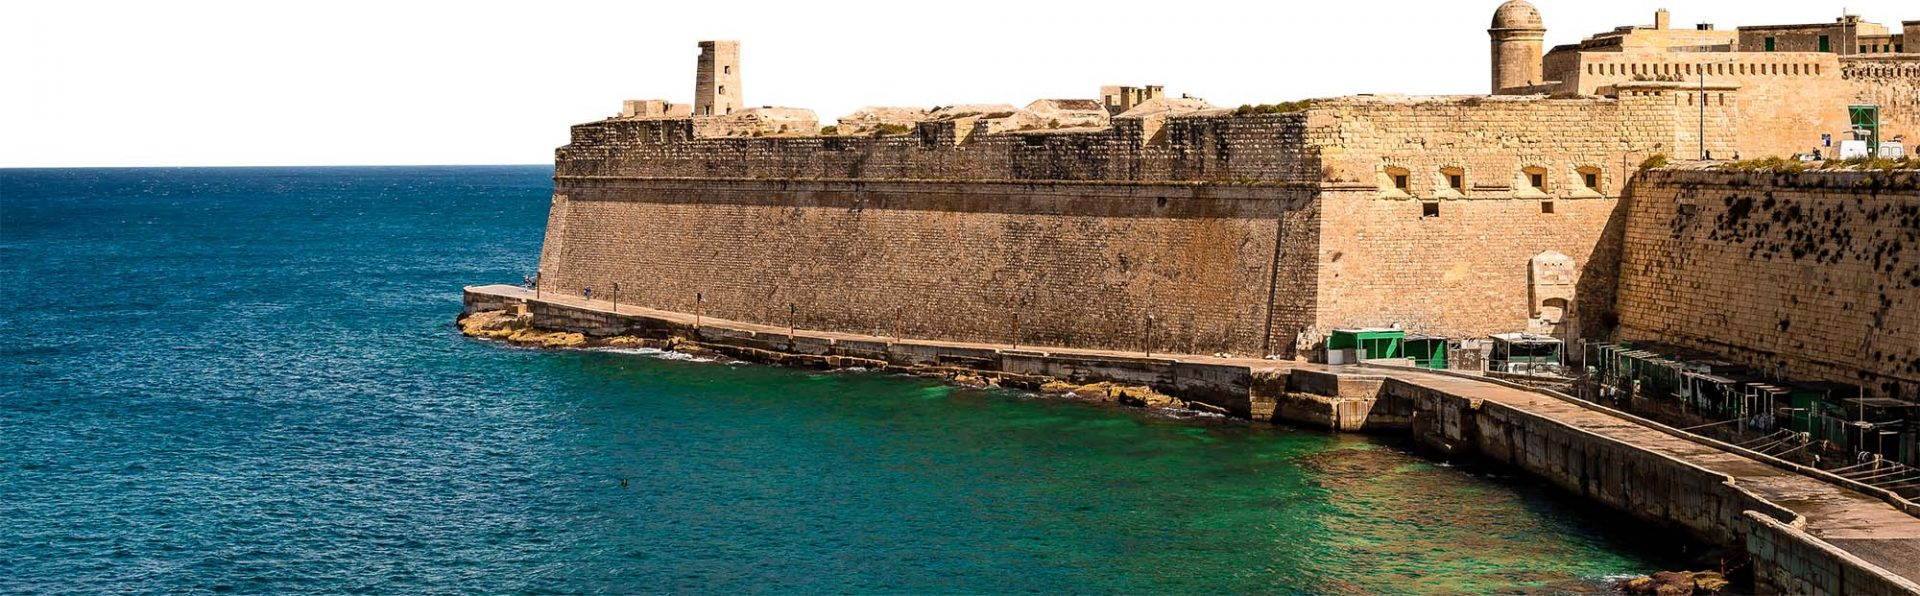 The Full Programme for the Malta Mediterranean Literature Festival 2019